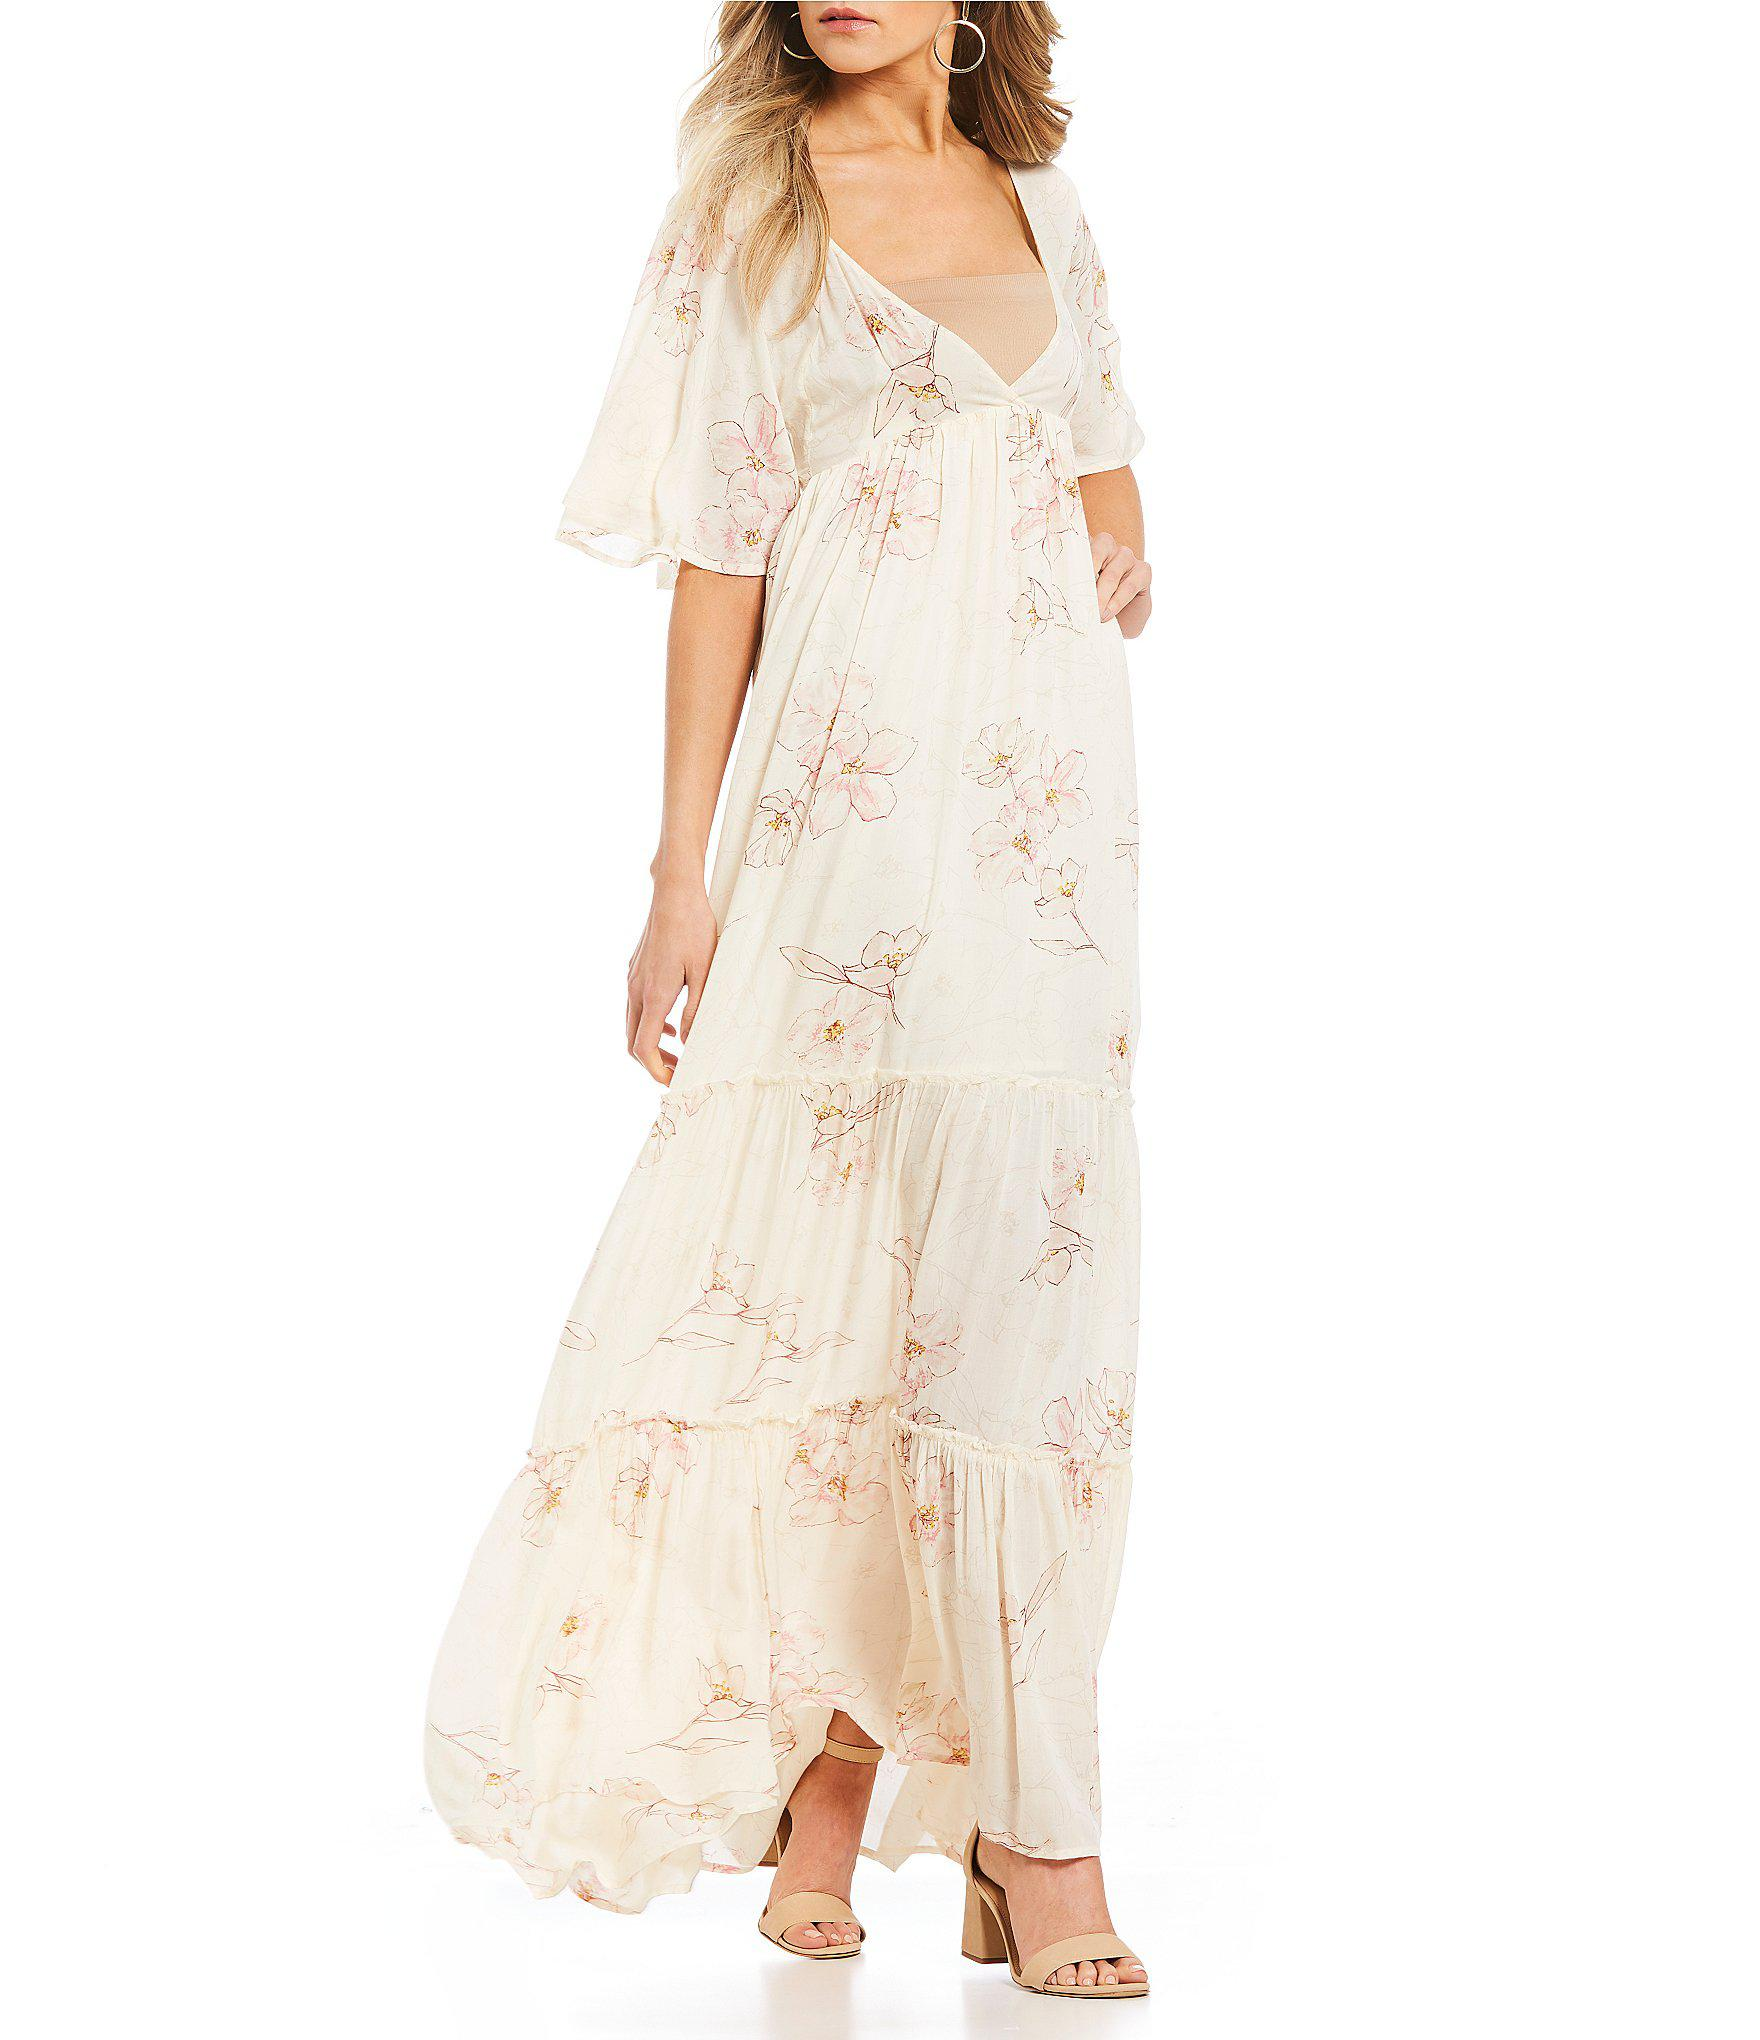 5b0efe5a57f Billabong Seas The Day Floral Printed Tiered Ruffle Maxi Dress in ...